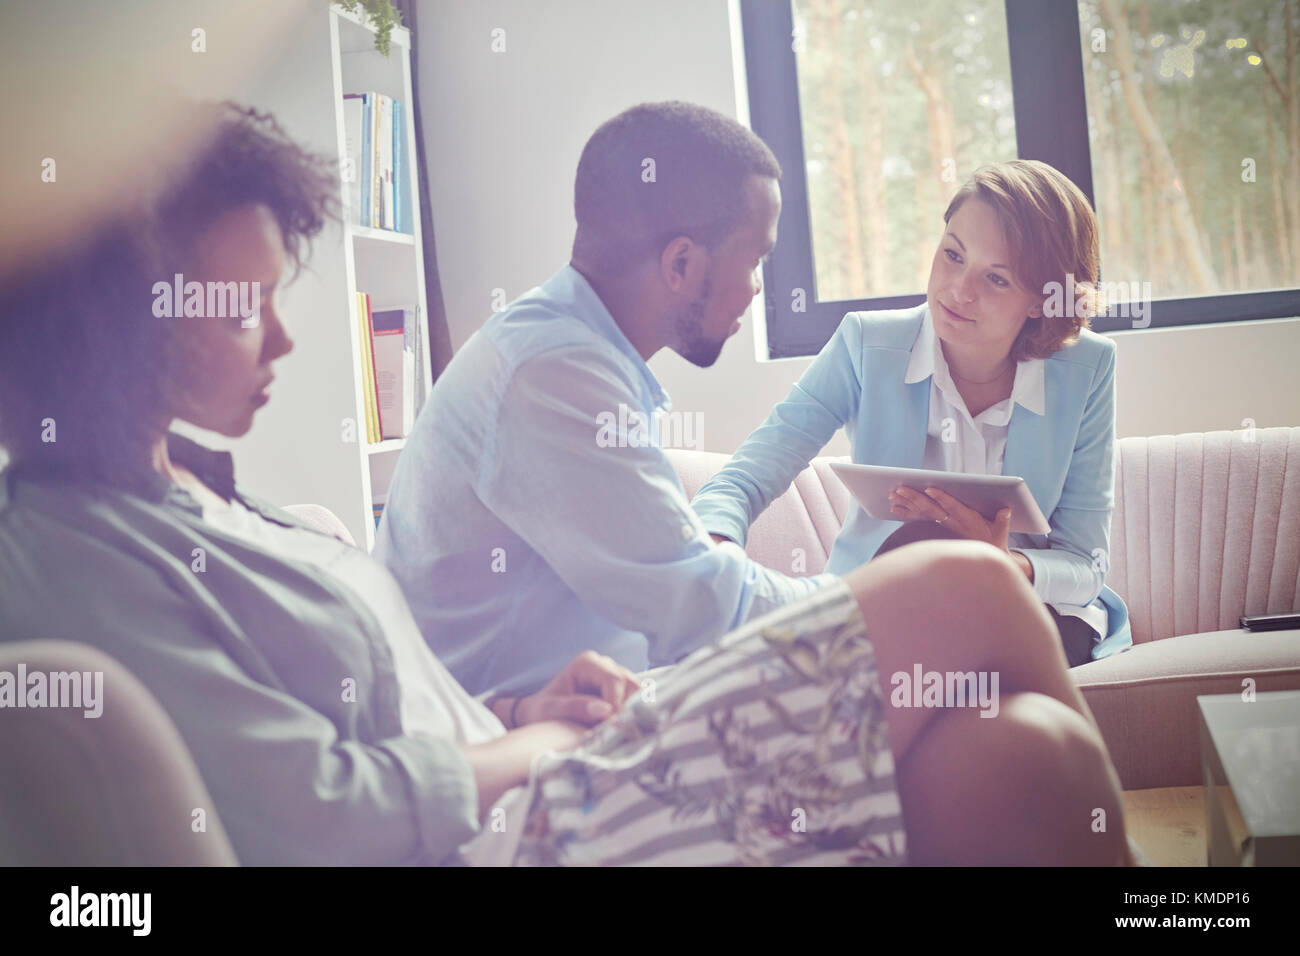 Female therapist with digital tablet comforting man in couples therapy session - Stock Image